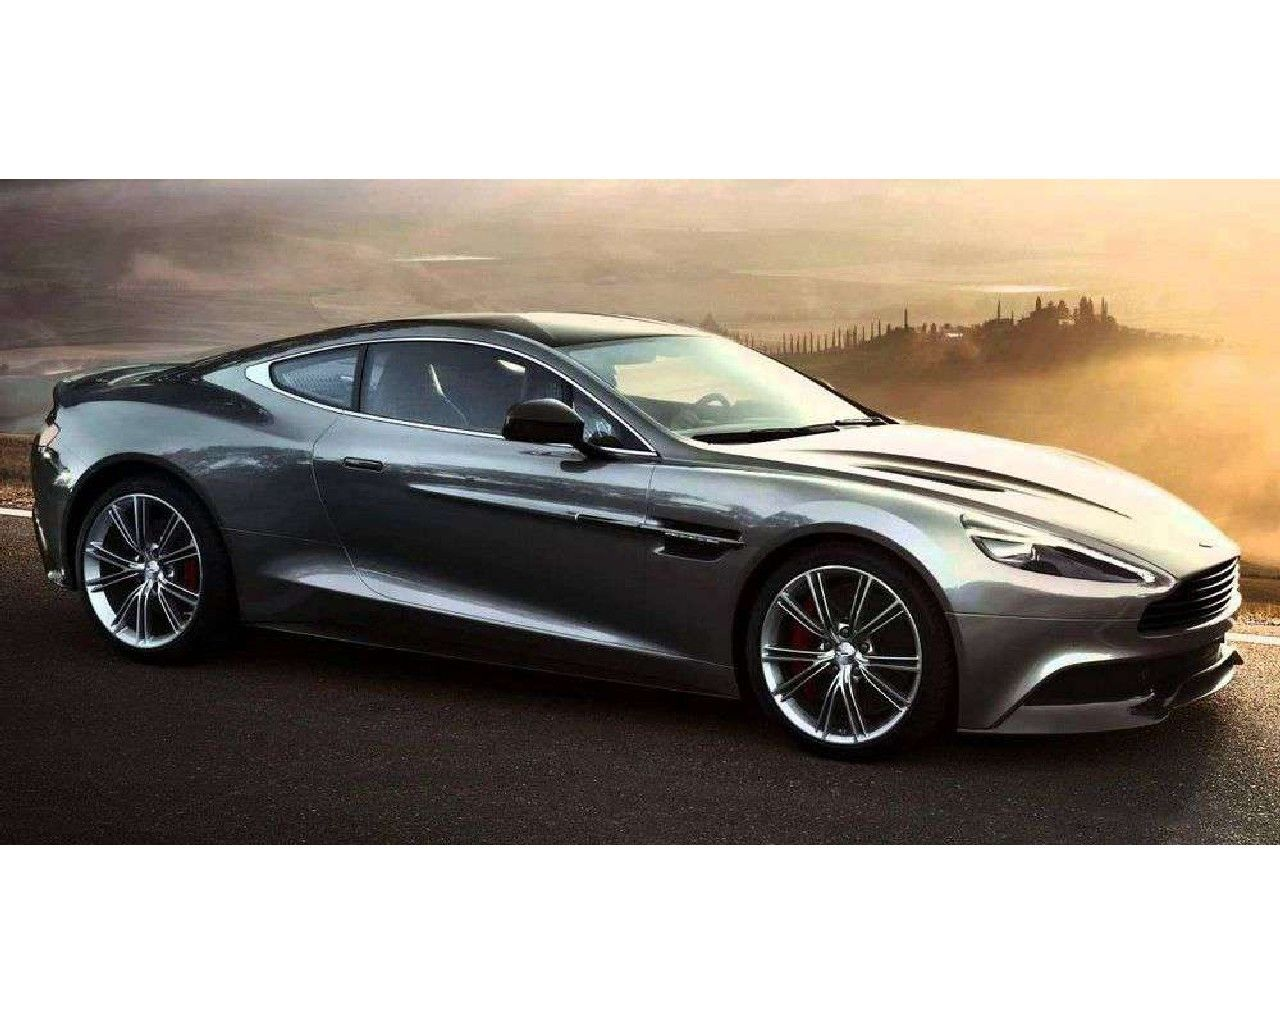 Cool 2017 Aston Martin Db11 Specifications And Price Http Pistoncars Com 2017 Aston Martin Db11 Specific Aston Martin Vanquish Aston Martin Aston Martin Db11